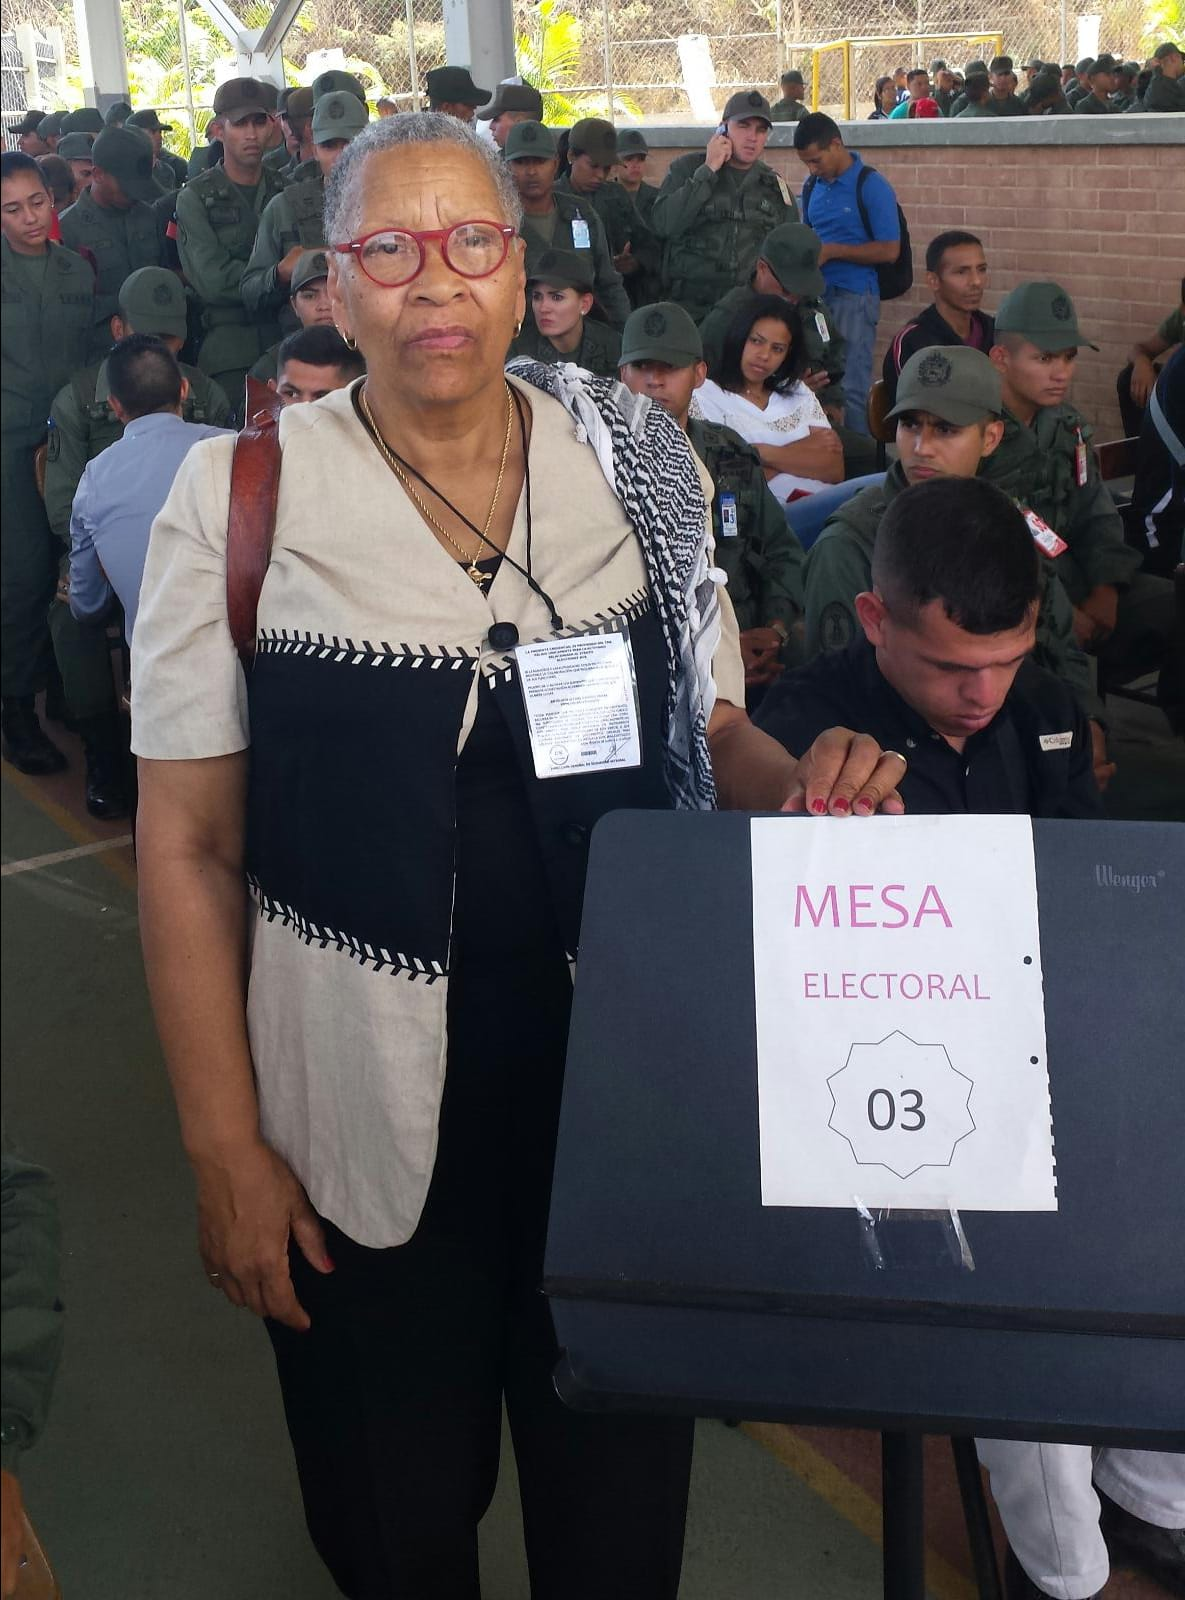 BAP member Efia Nwangaza in Venezuela for the presidential election!